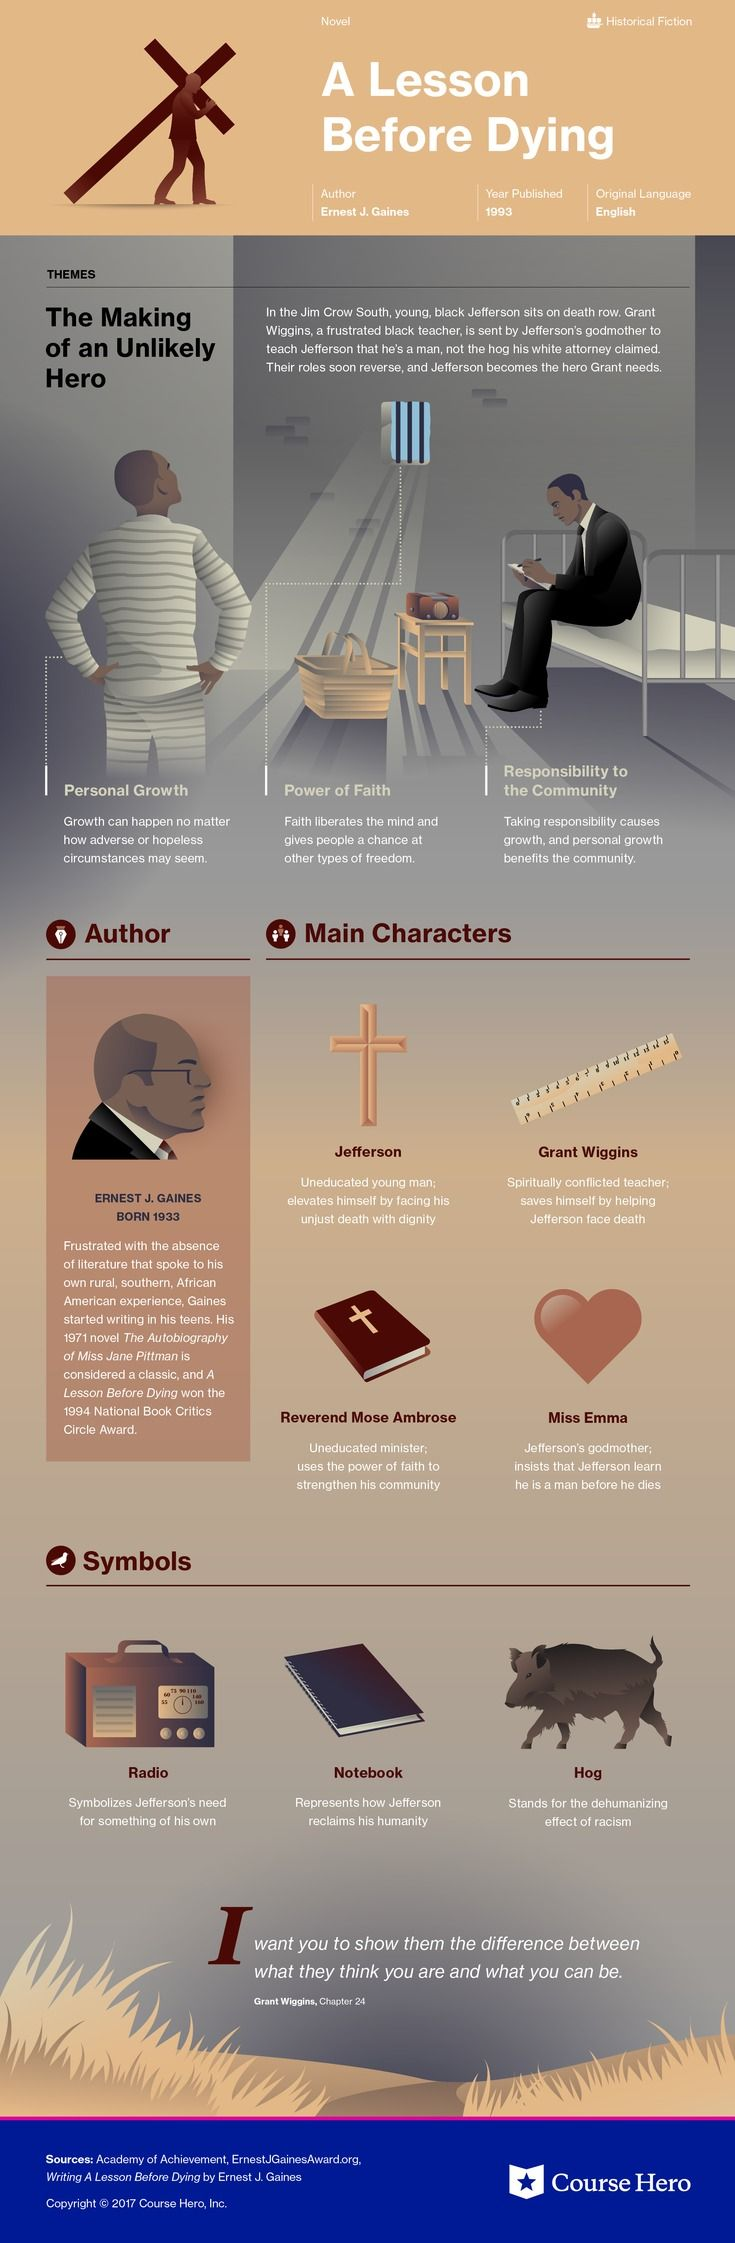 A Lesson Before Dying Study Guide Course Hero Book Infographic Literature Books Essay Topics